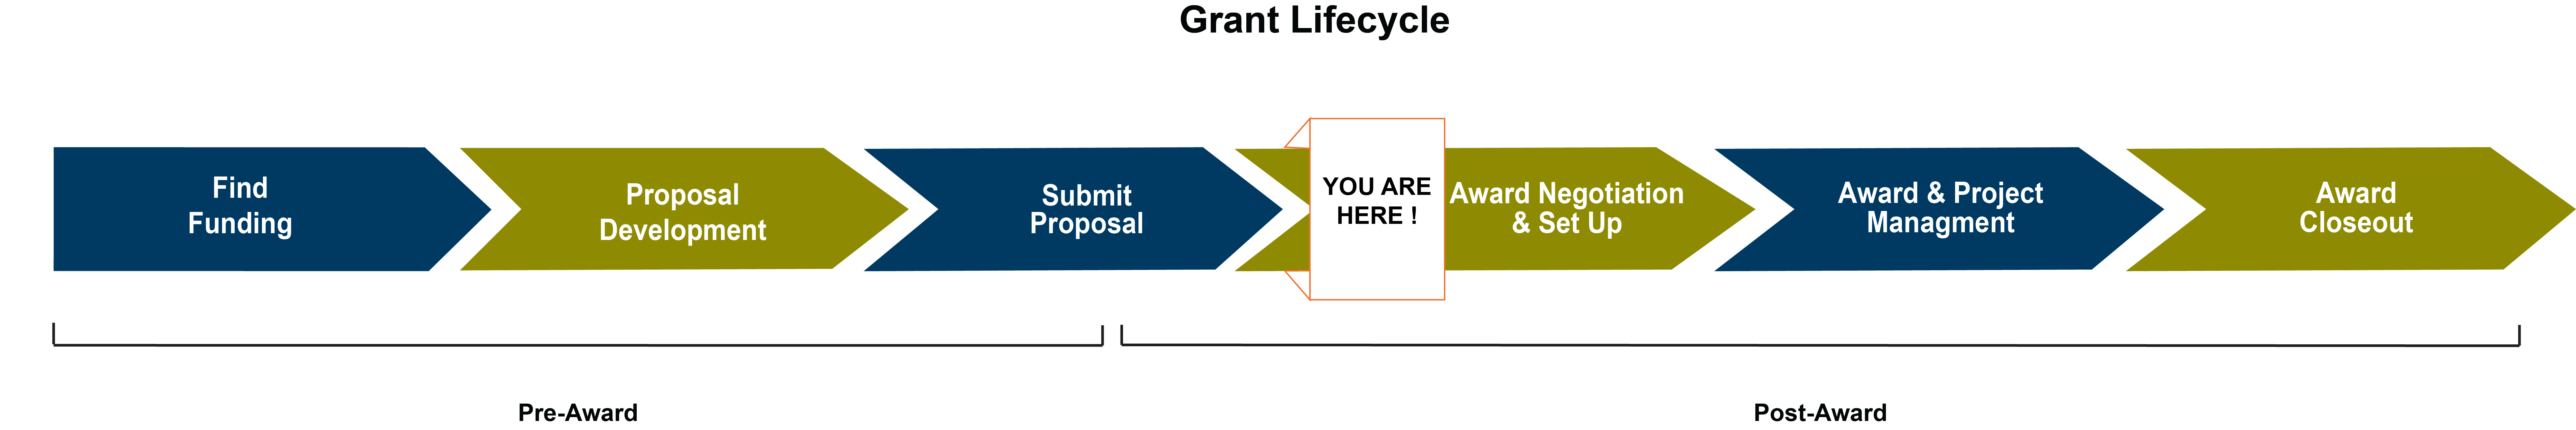 Award_Negotiation_grant_fundingcylcle